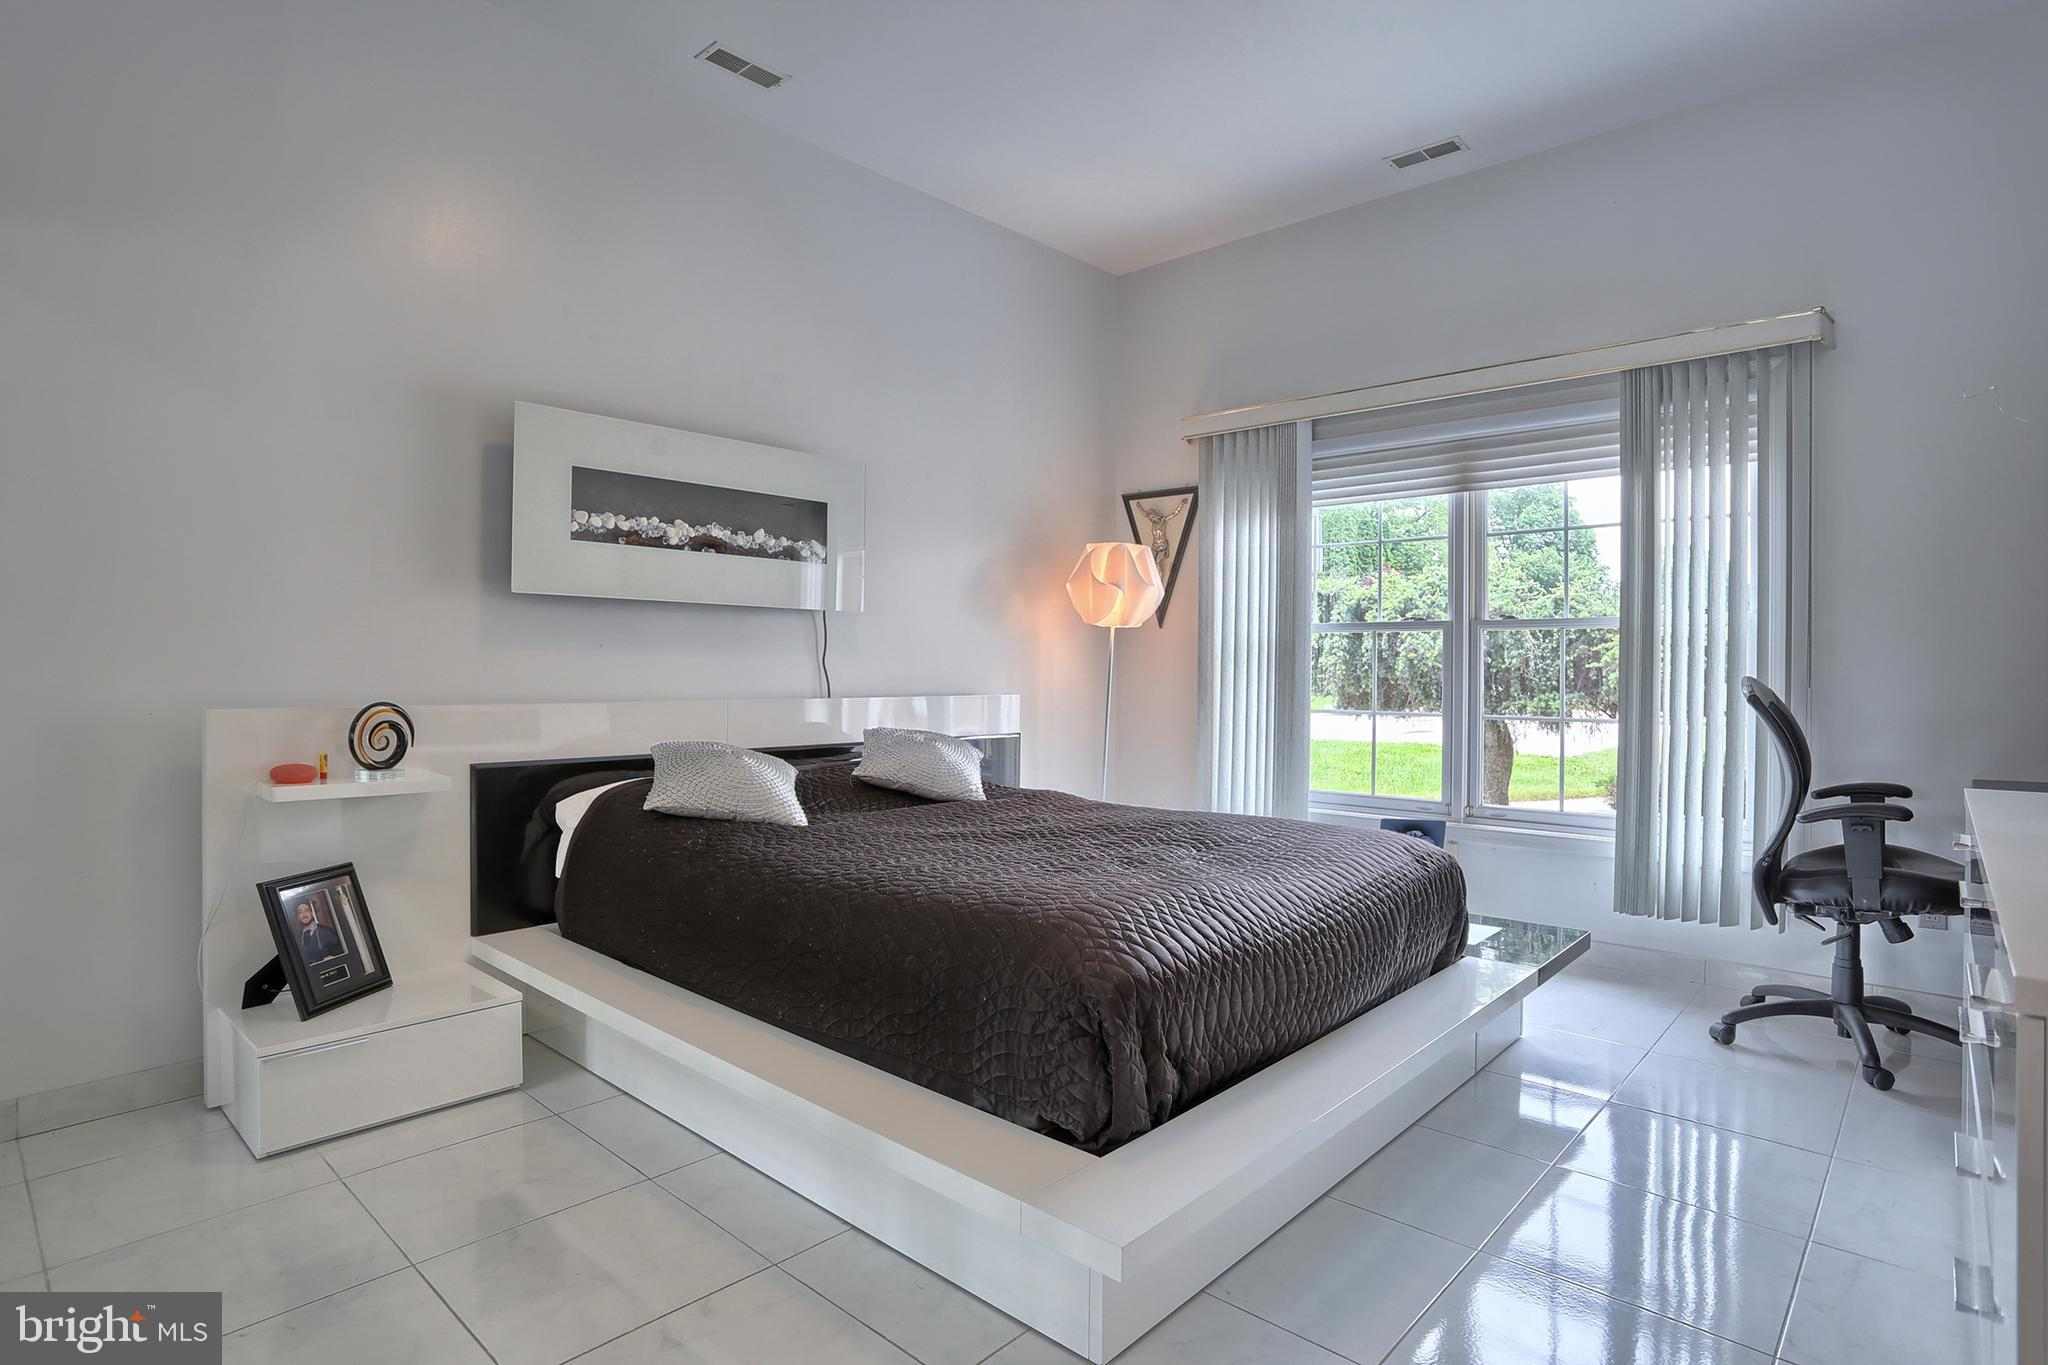 12' x 16' bedroom # 2 with porcelain floor and WIC